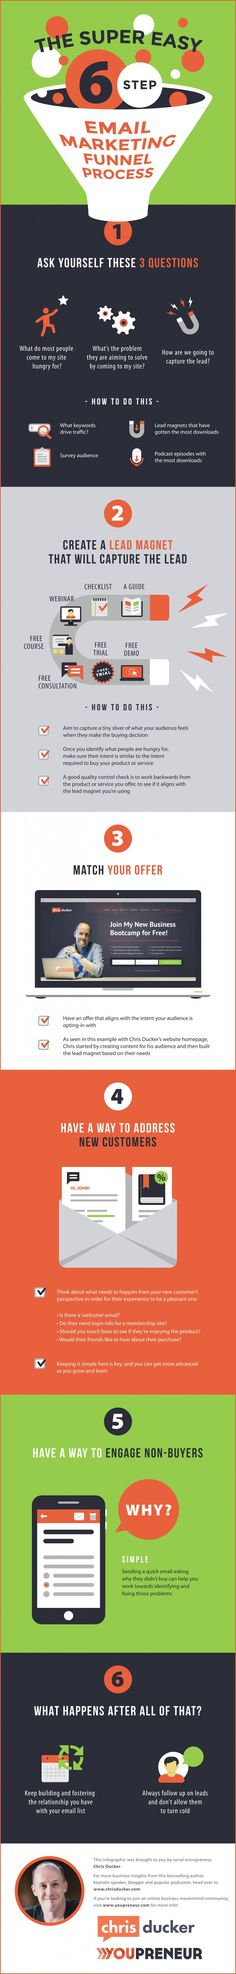 The Super Easy 6-Step Email Marketing Funnel [Infographic] - http://360phot0.com/the-super-easy-6-step-email-marketing-funnel-infographic/